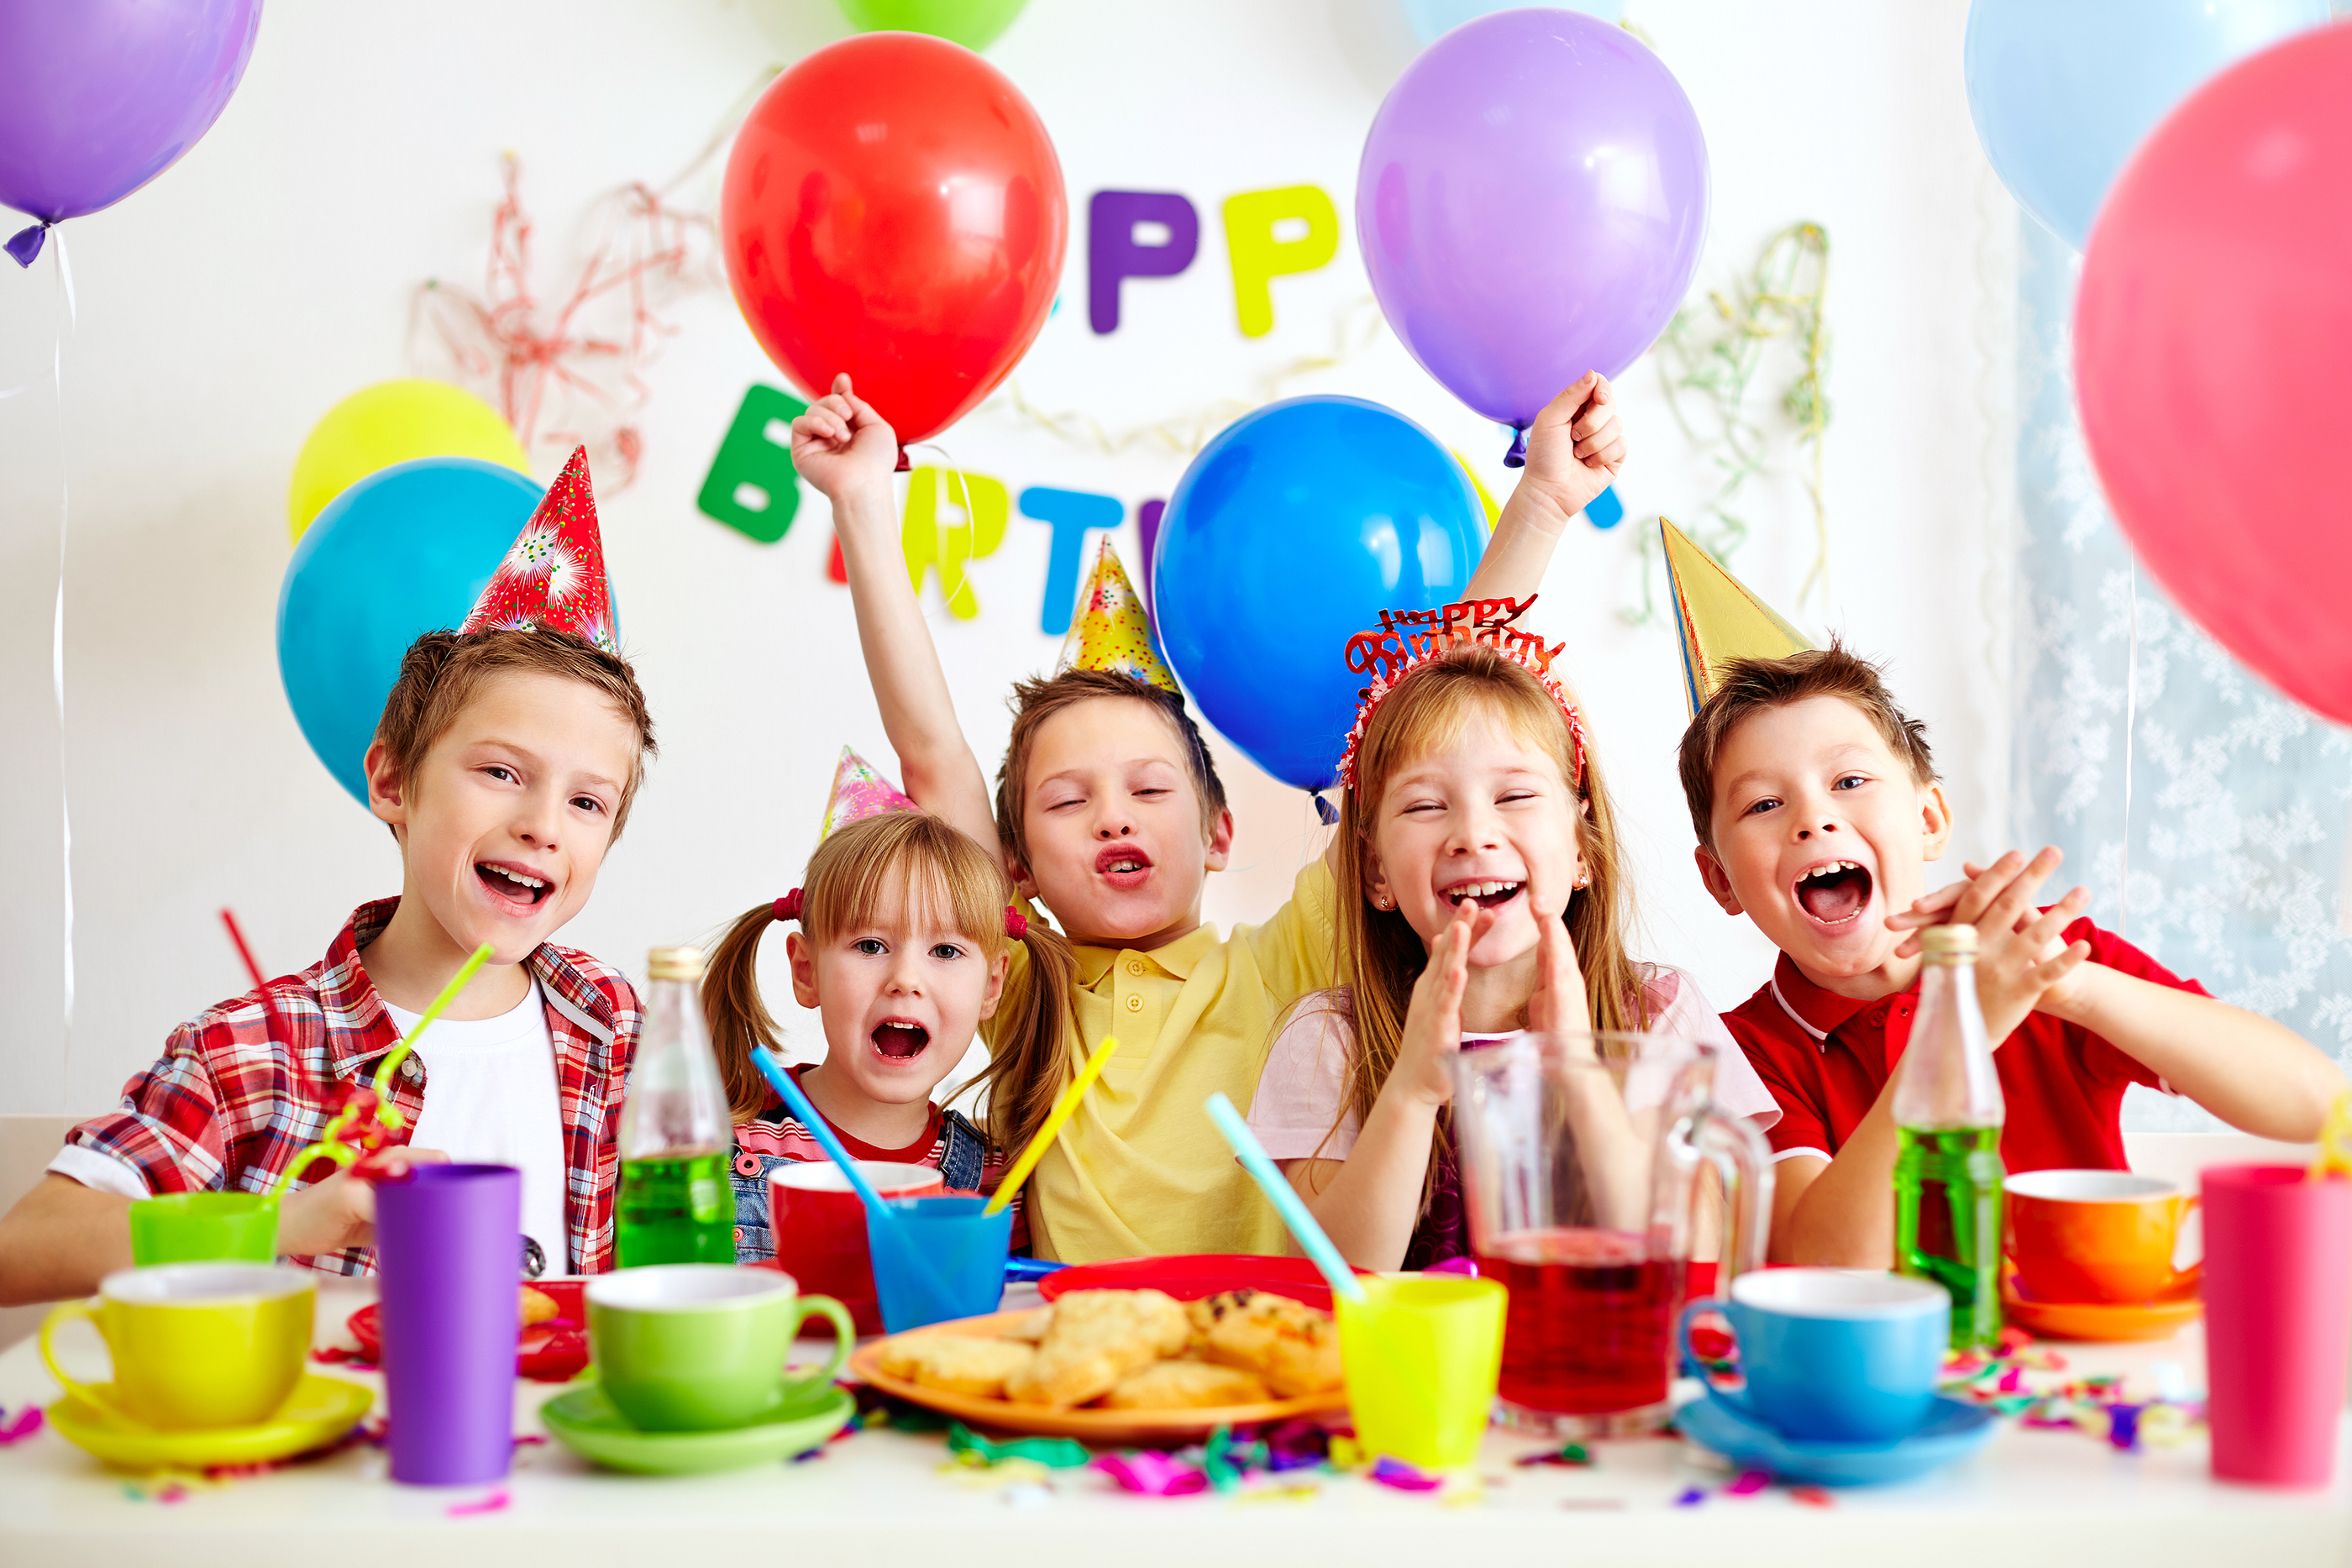 Unique Invitation Ideas For A Child's Birthday Party